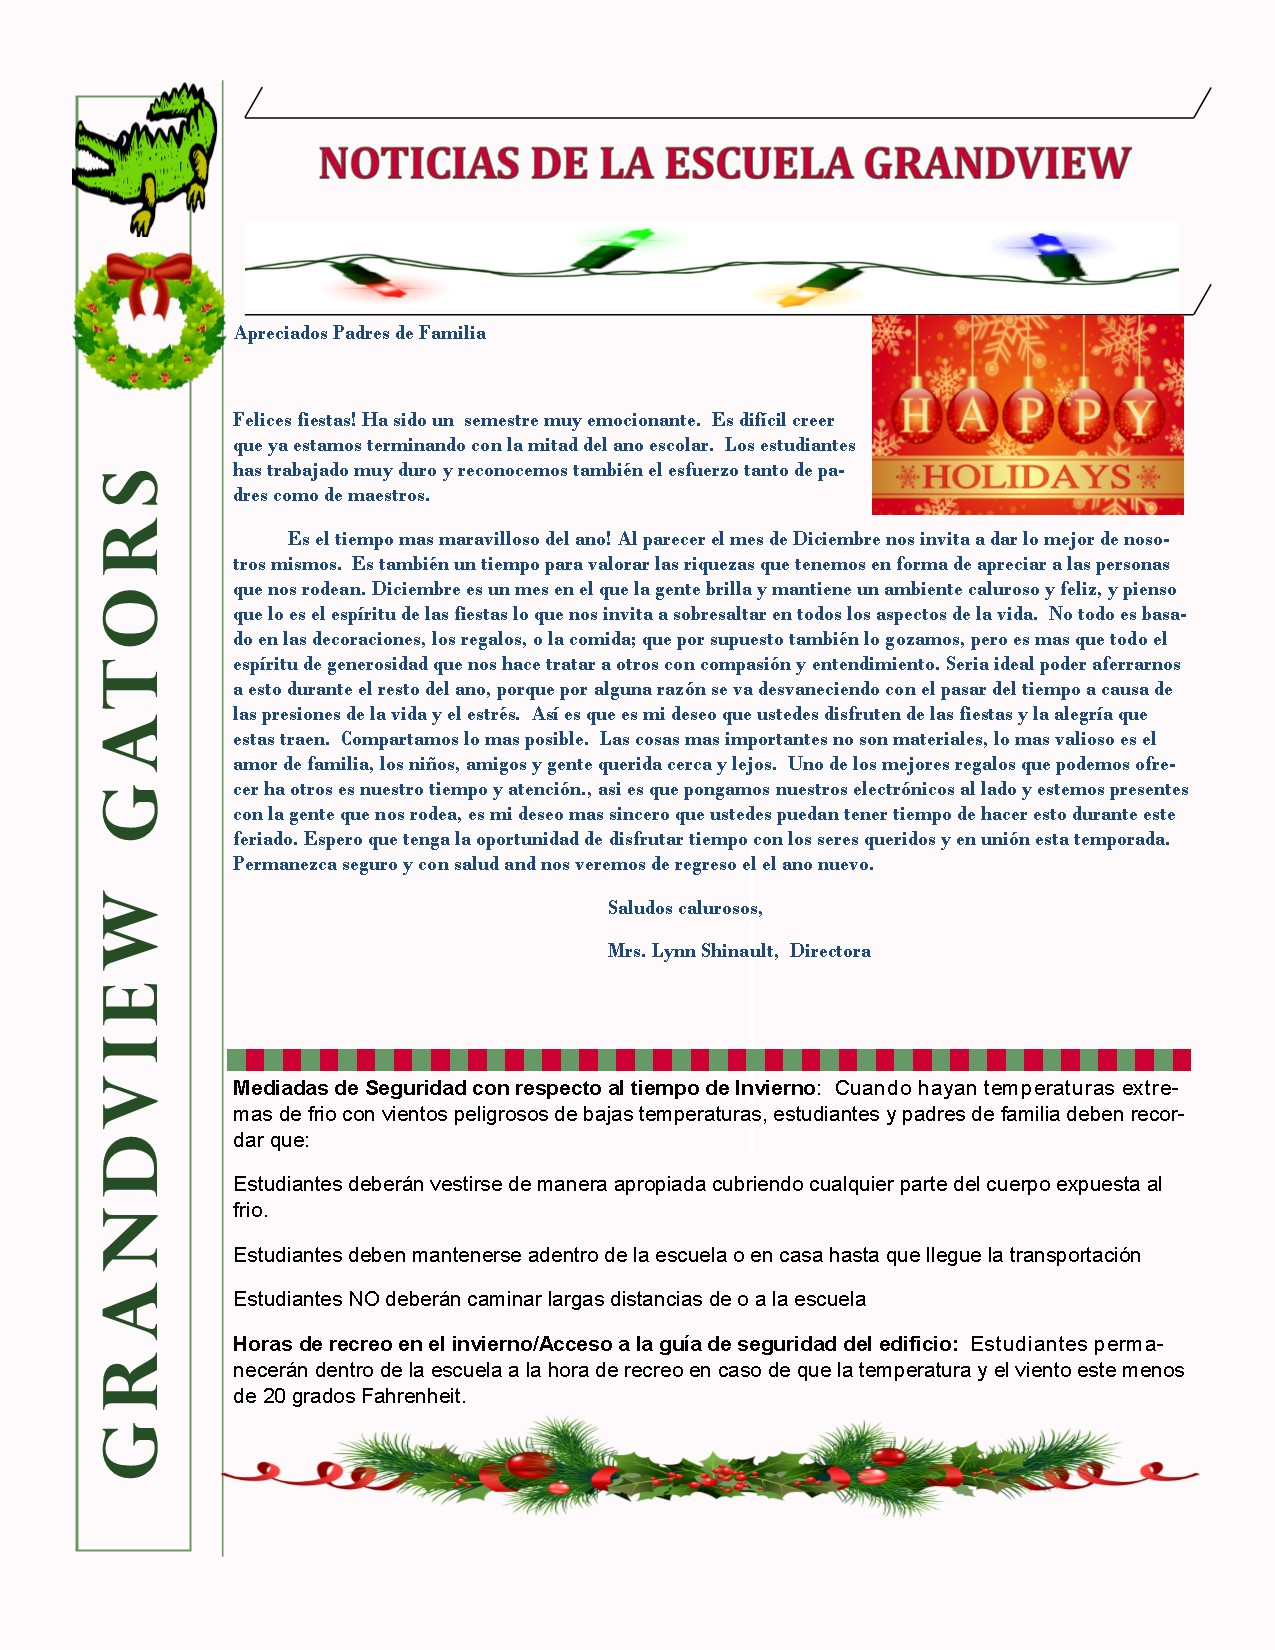 Spanish newsletter see document belpw